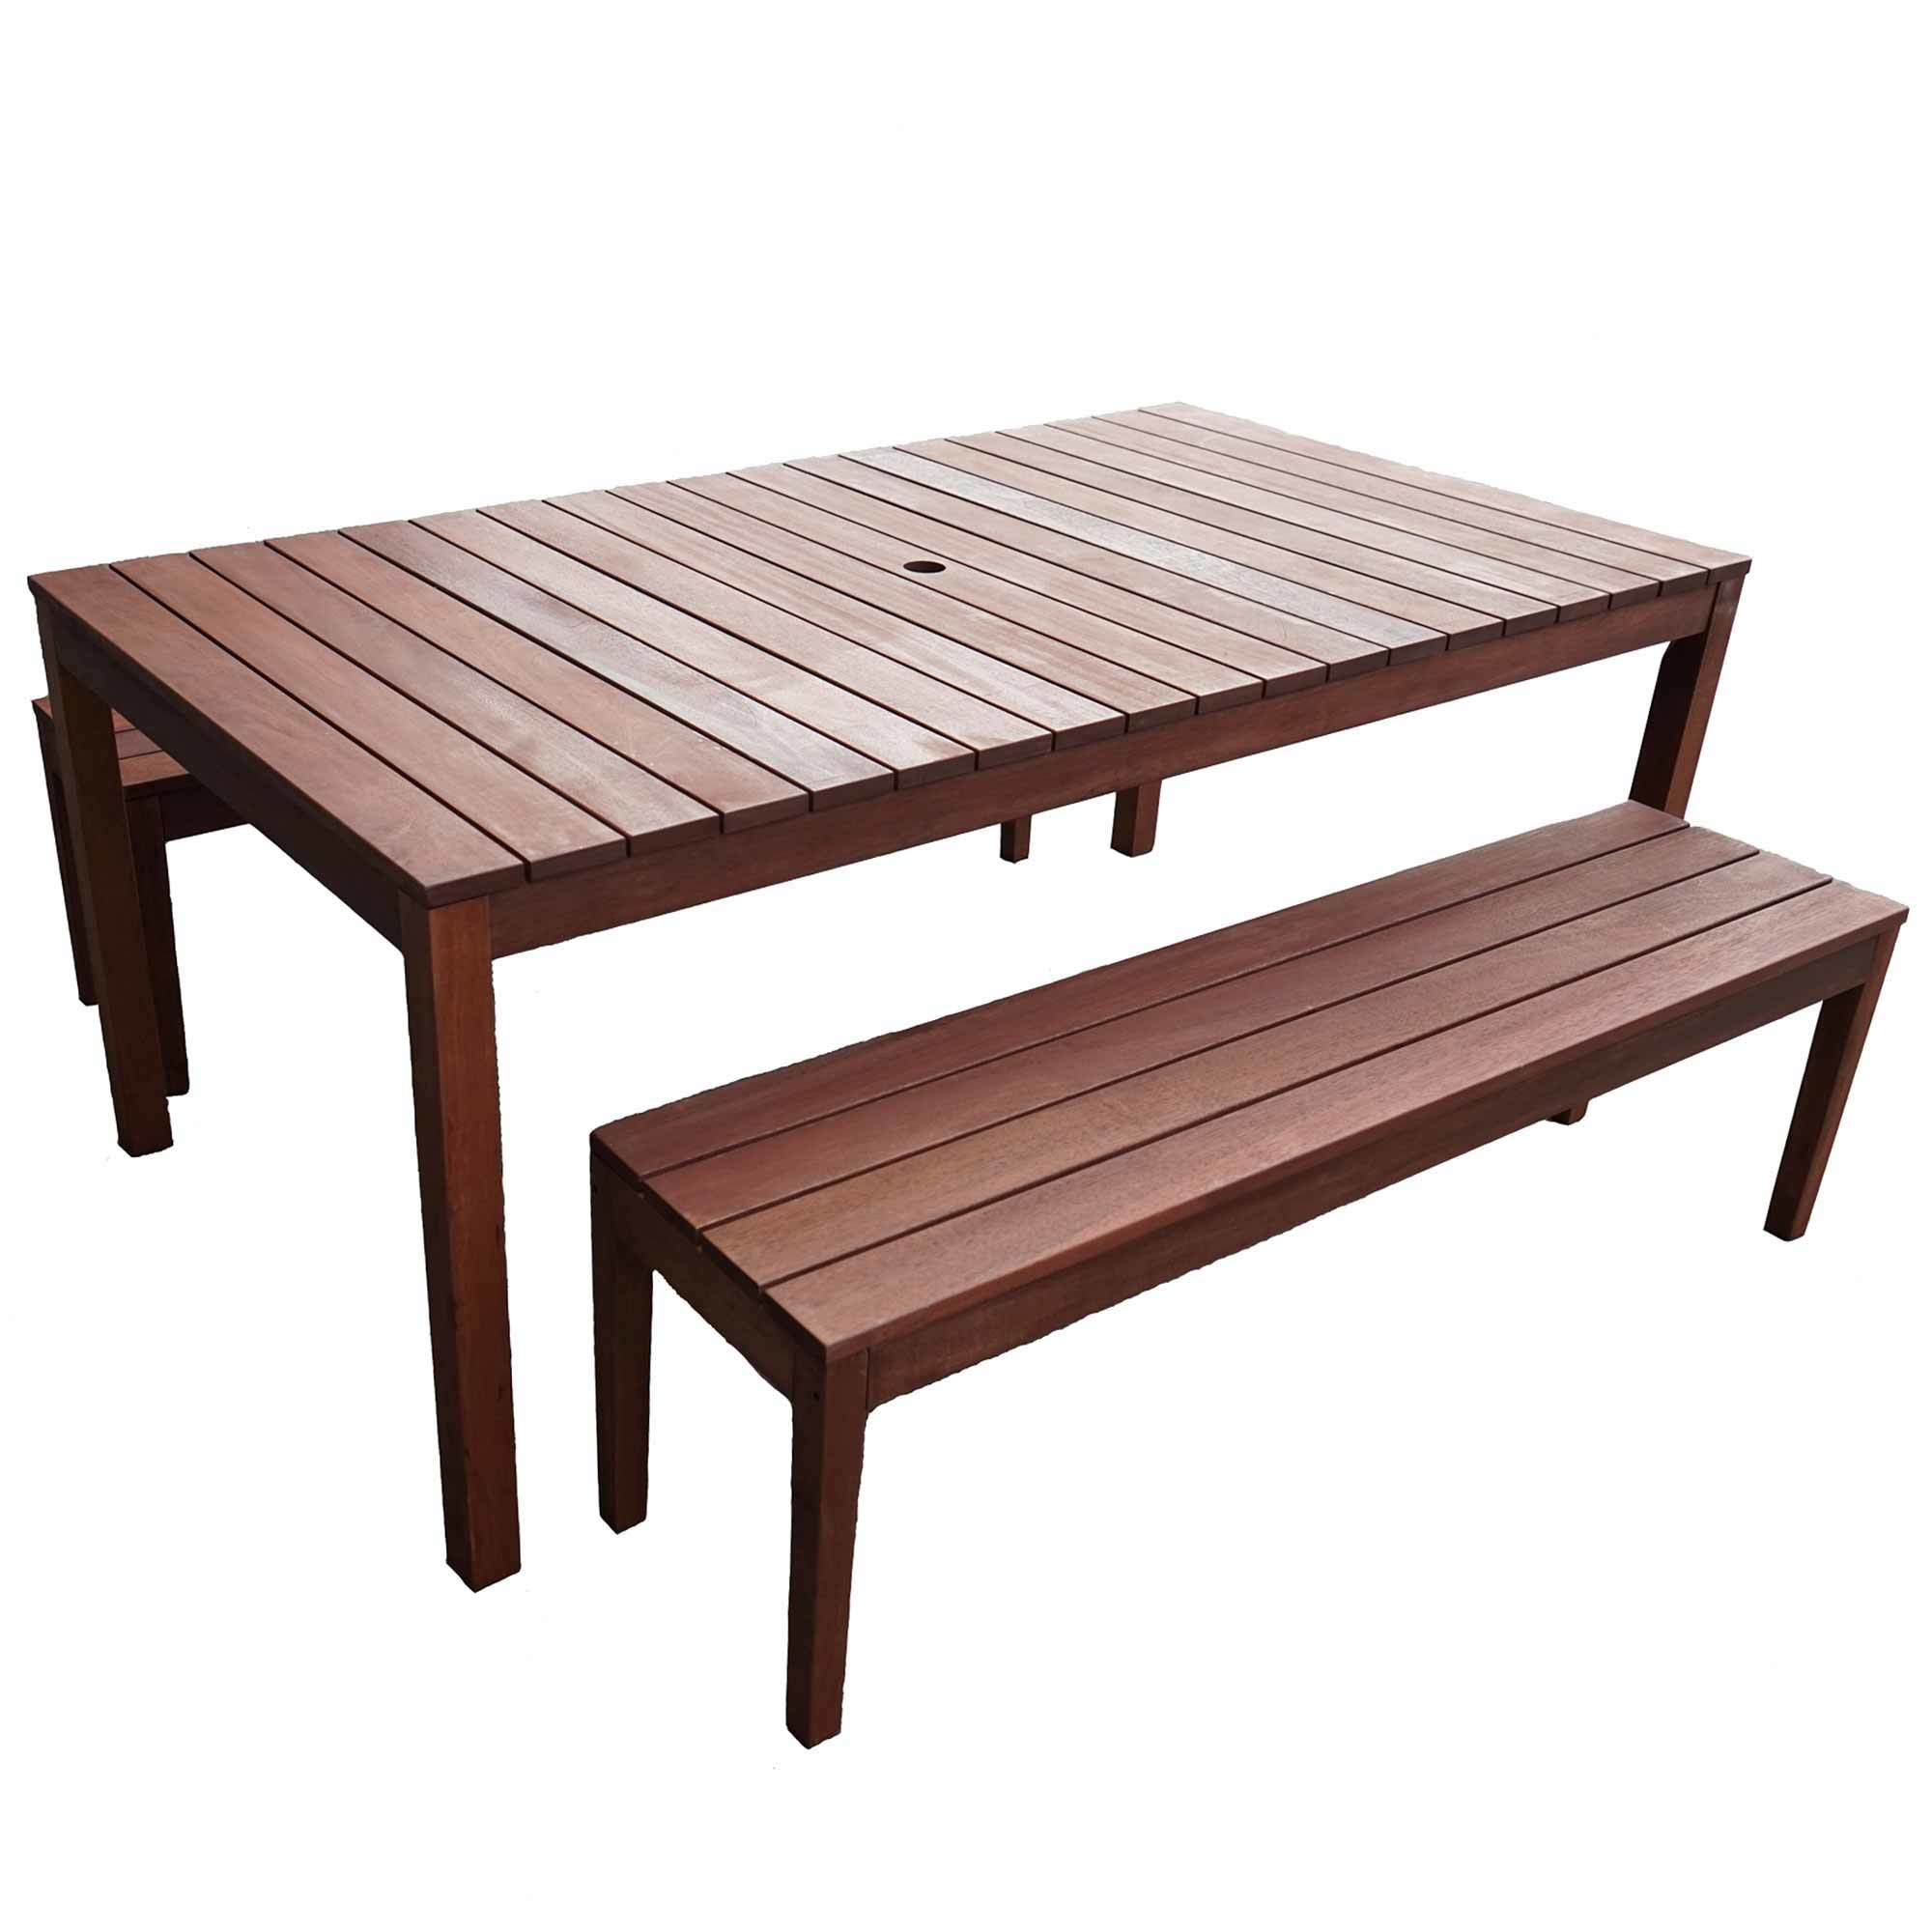 Picture of: Woodlands Outdoor Furniture 6 Seater Outdoor Table Bench Set Reviews Temple Webster